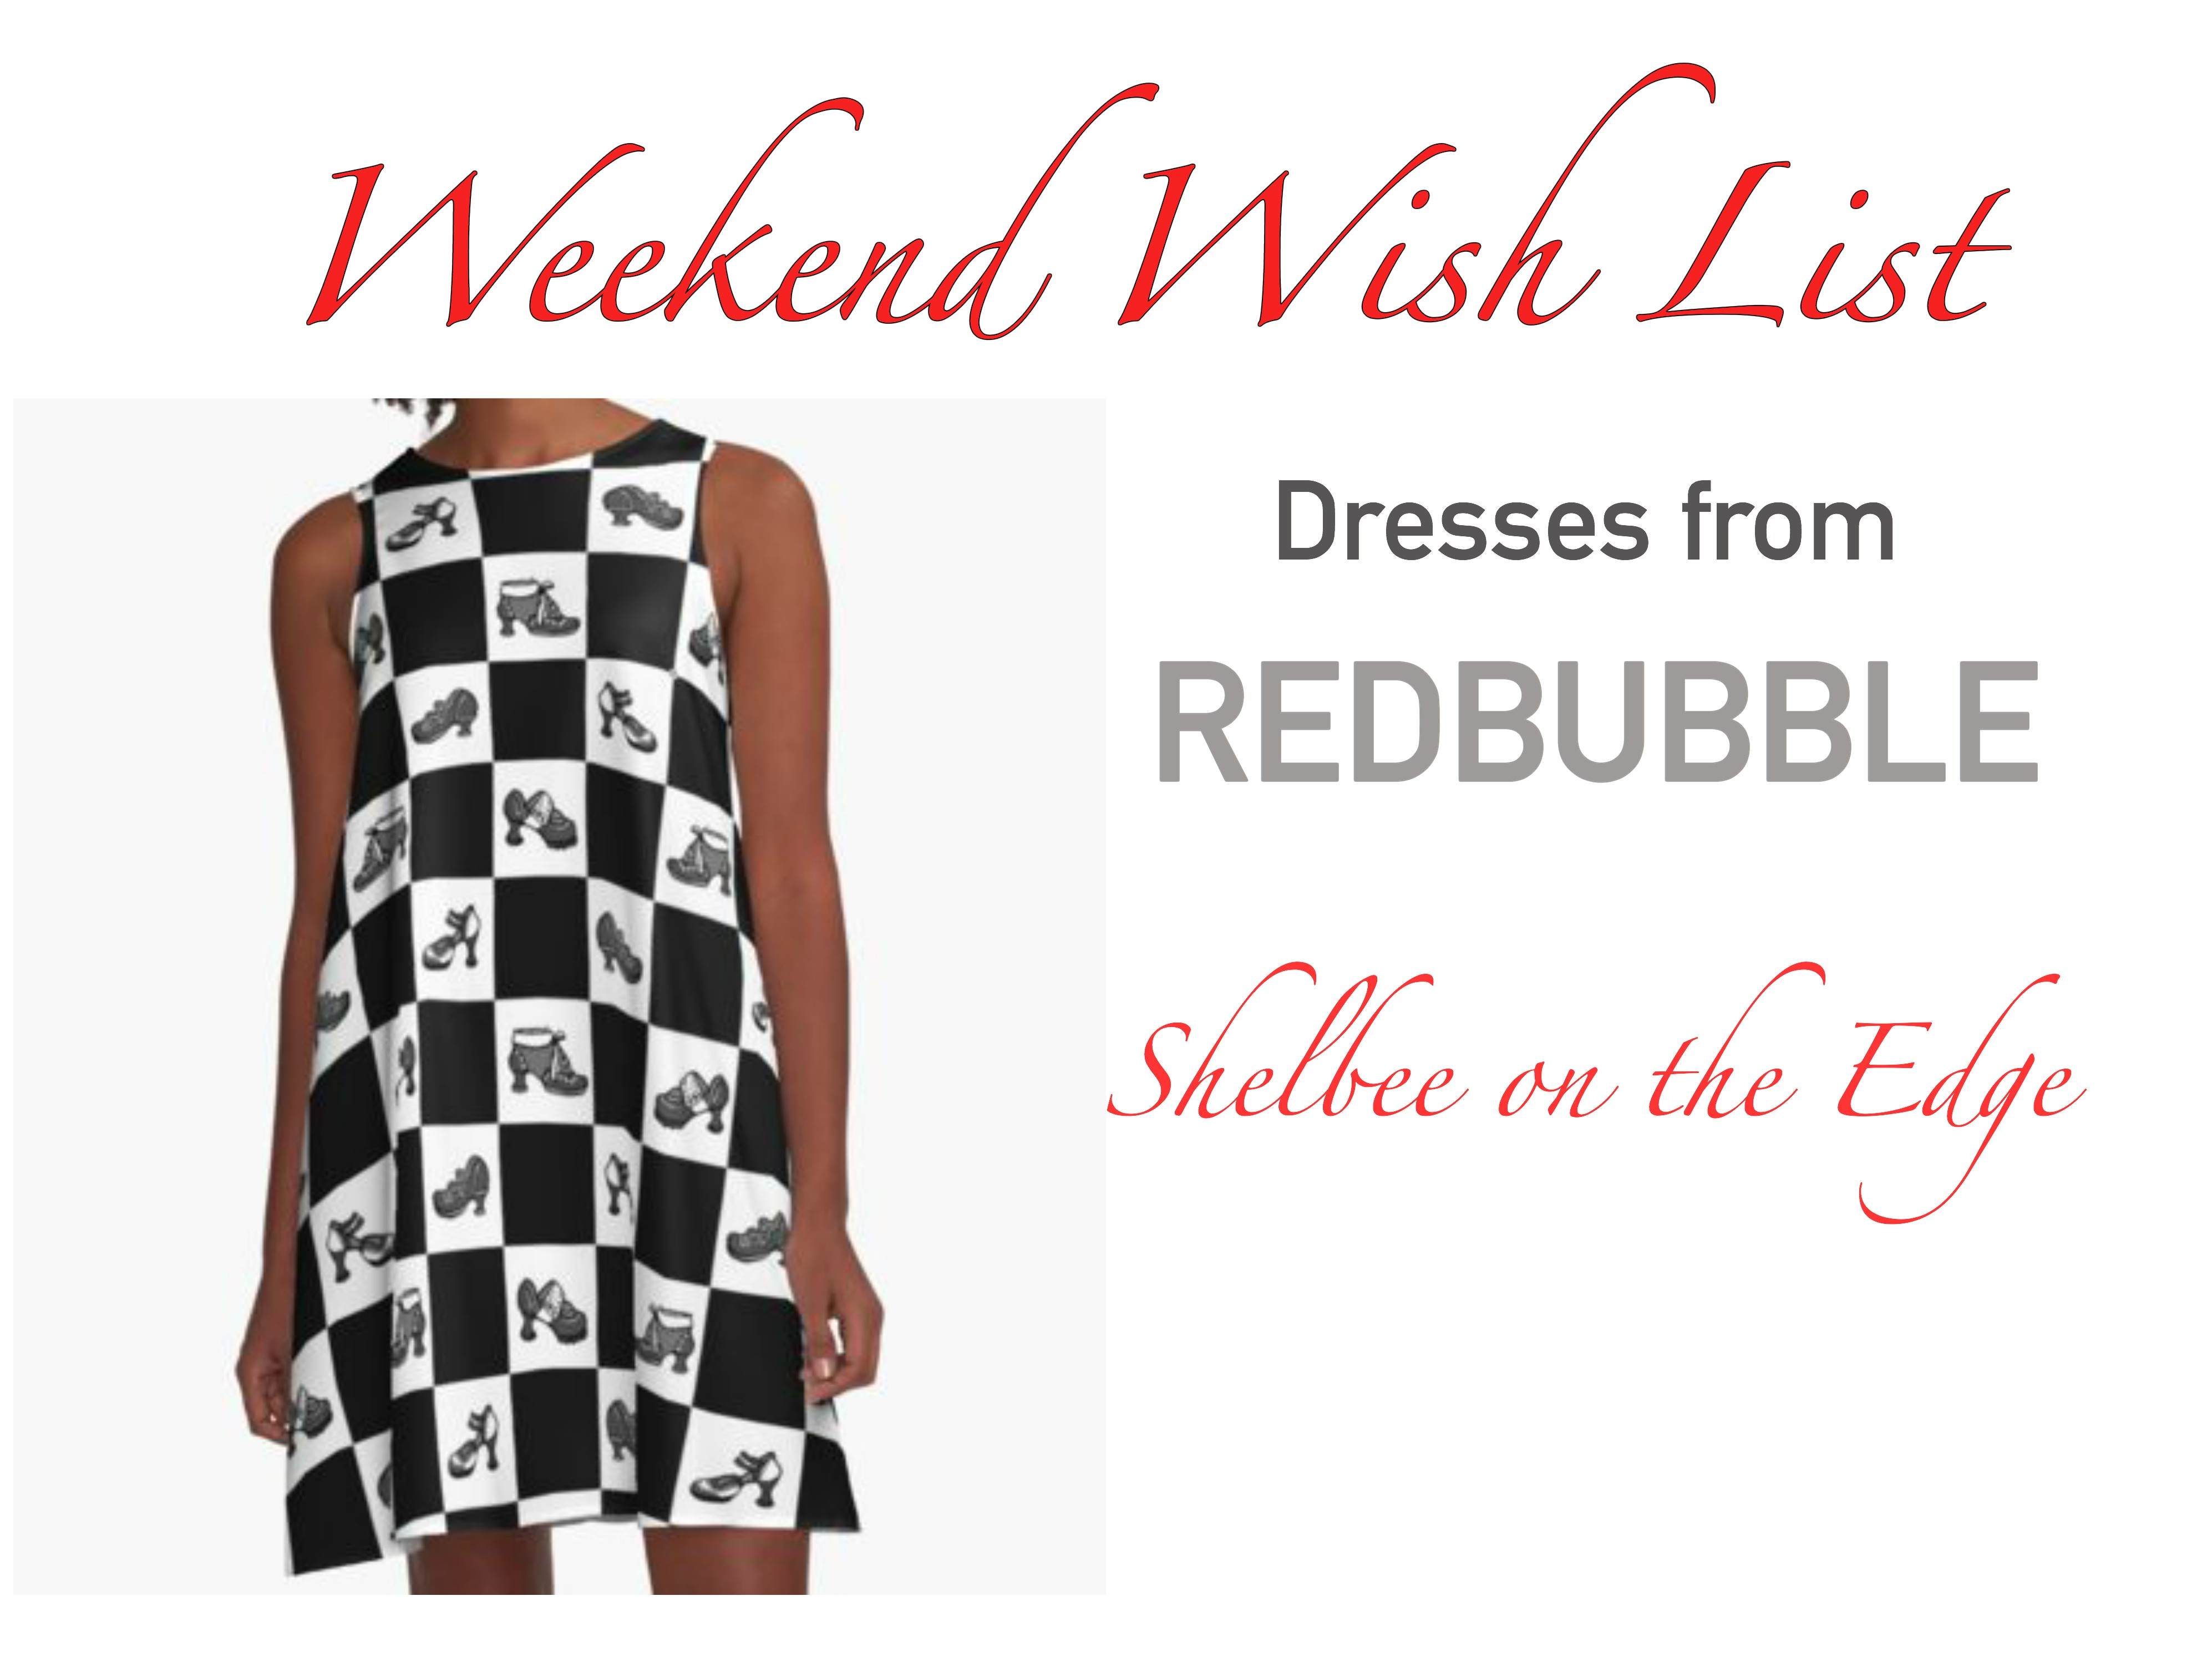 Weekend Wish List: Dresses from Redbubble